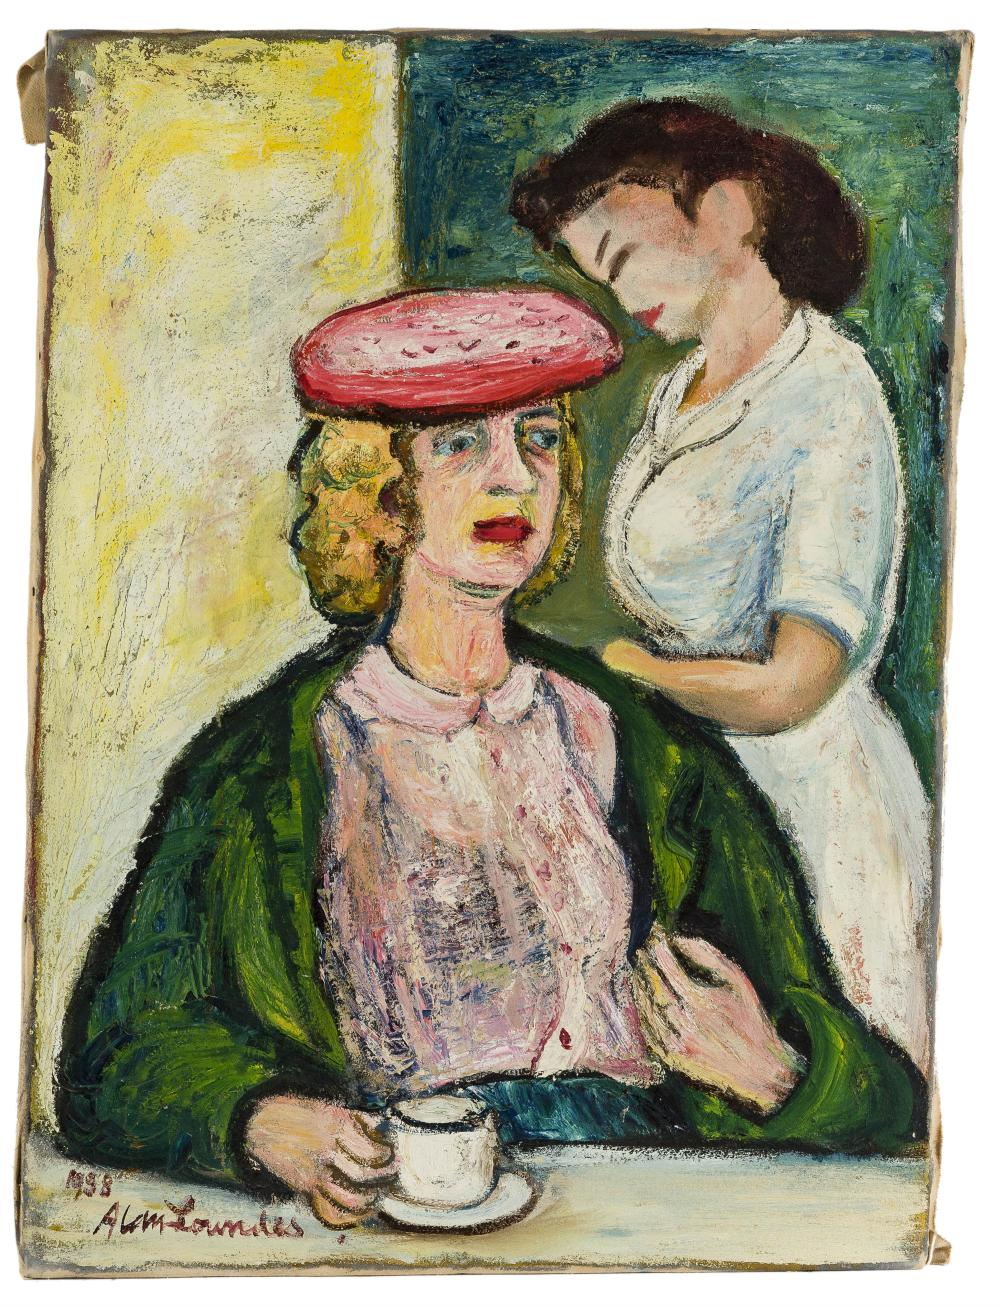 Alan Lowndes, (1921-1978 British), Woman in hat at the counter, 1958, Oil on canvas, 30